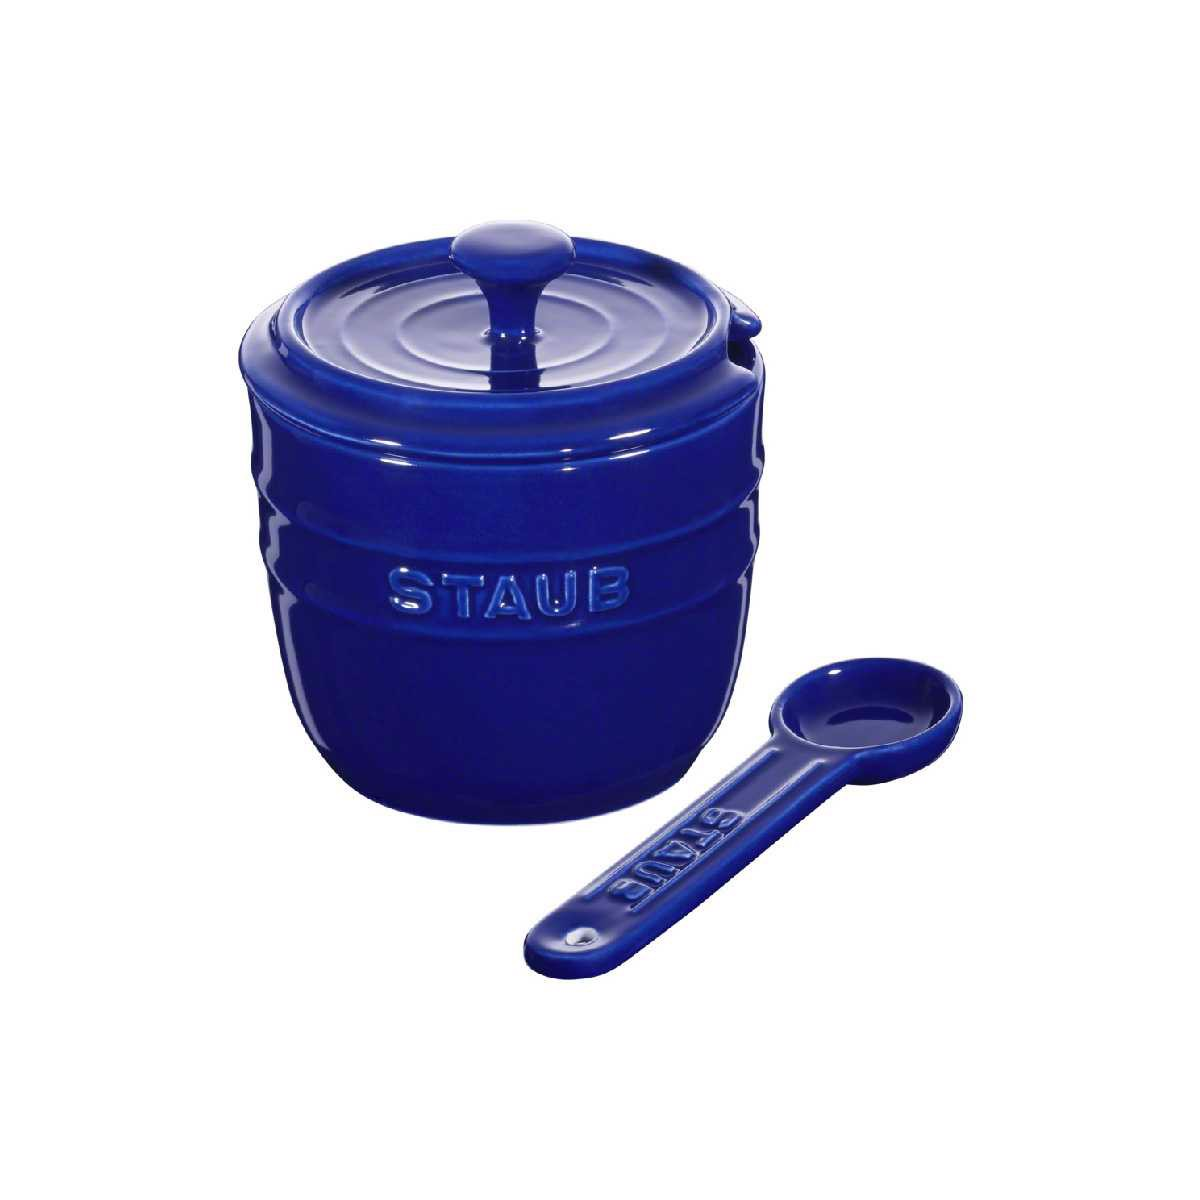 Staub - Sugar Bowl - Dark blue